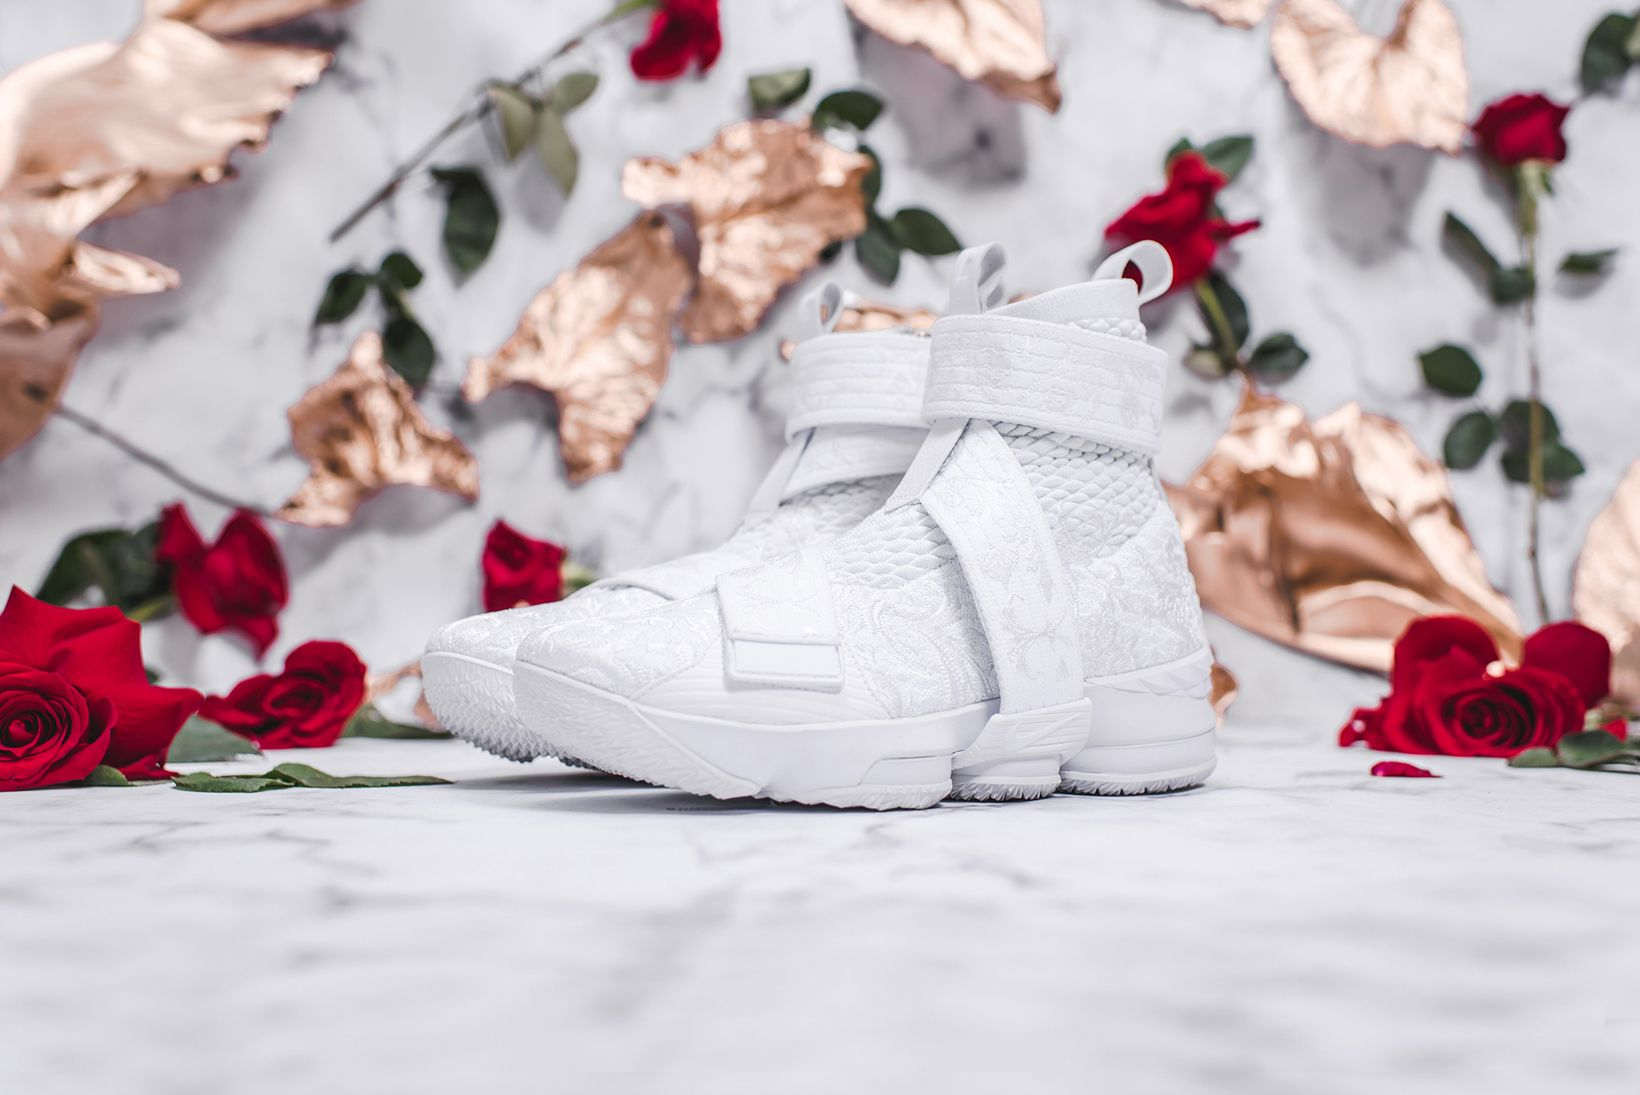 c0f94a92ce6 KITH Long Live the King Collection Chapter 2 LeBron James Ronnie Fieg Nike  Basketball 15 xv sneakers black floral flower embroidery embroider white  green ...